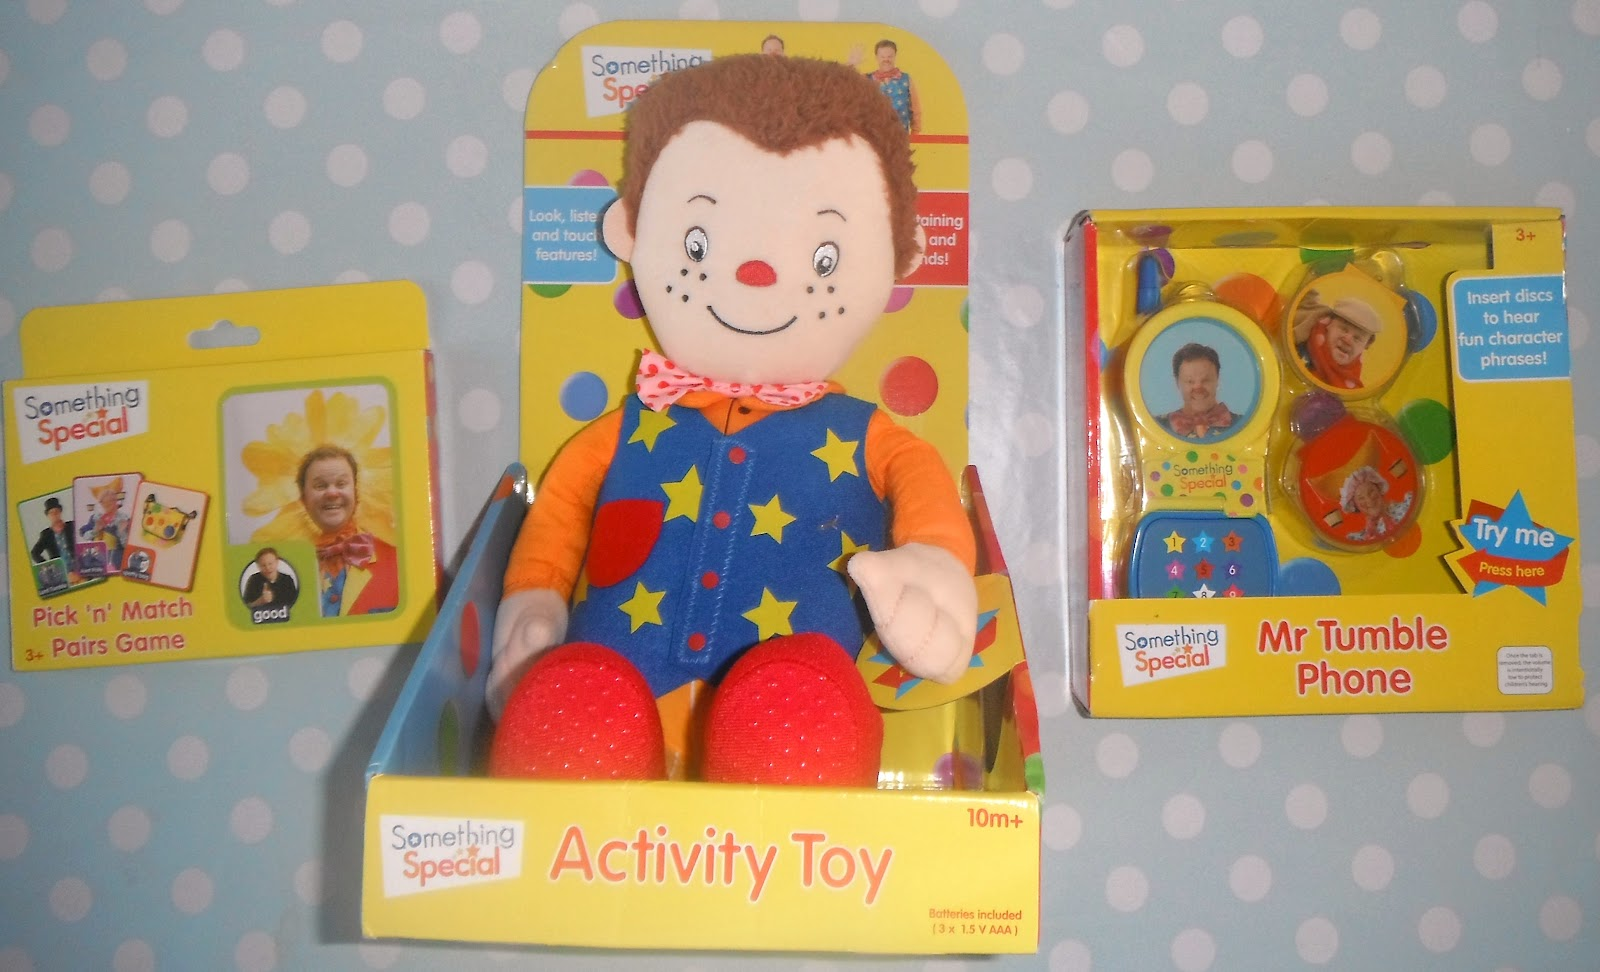 Madhouse Family Reviews: Mr Tumble Something Special toys ...